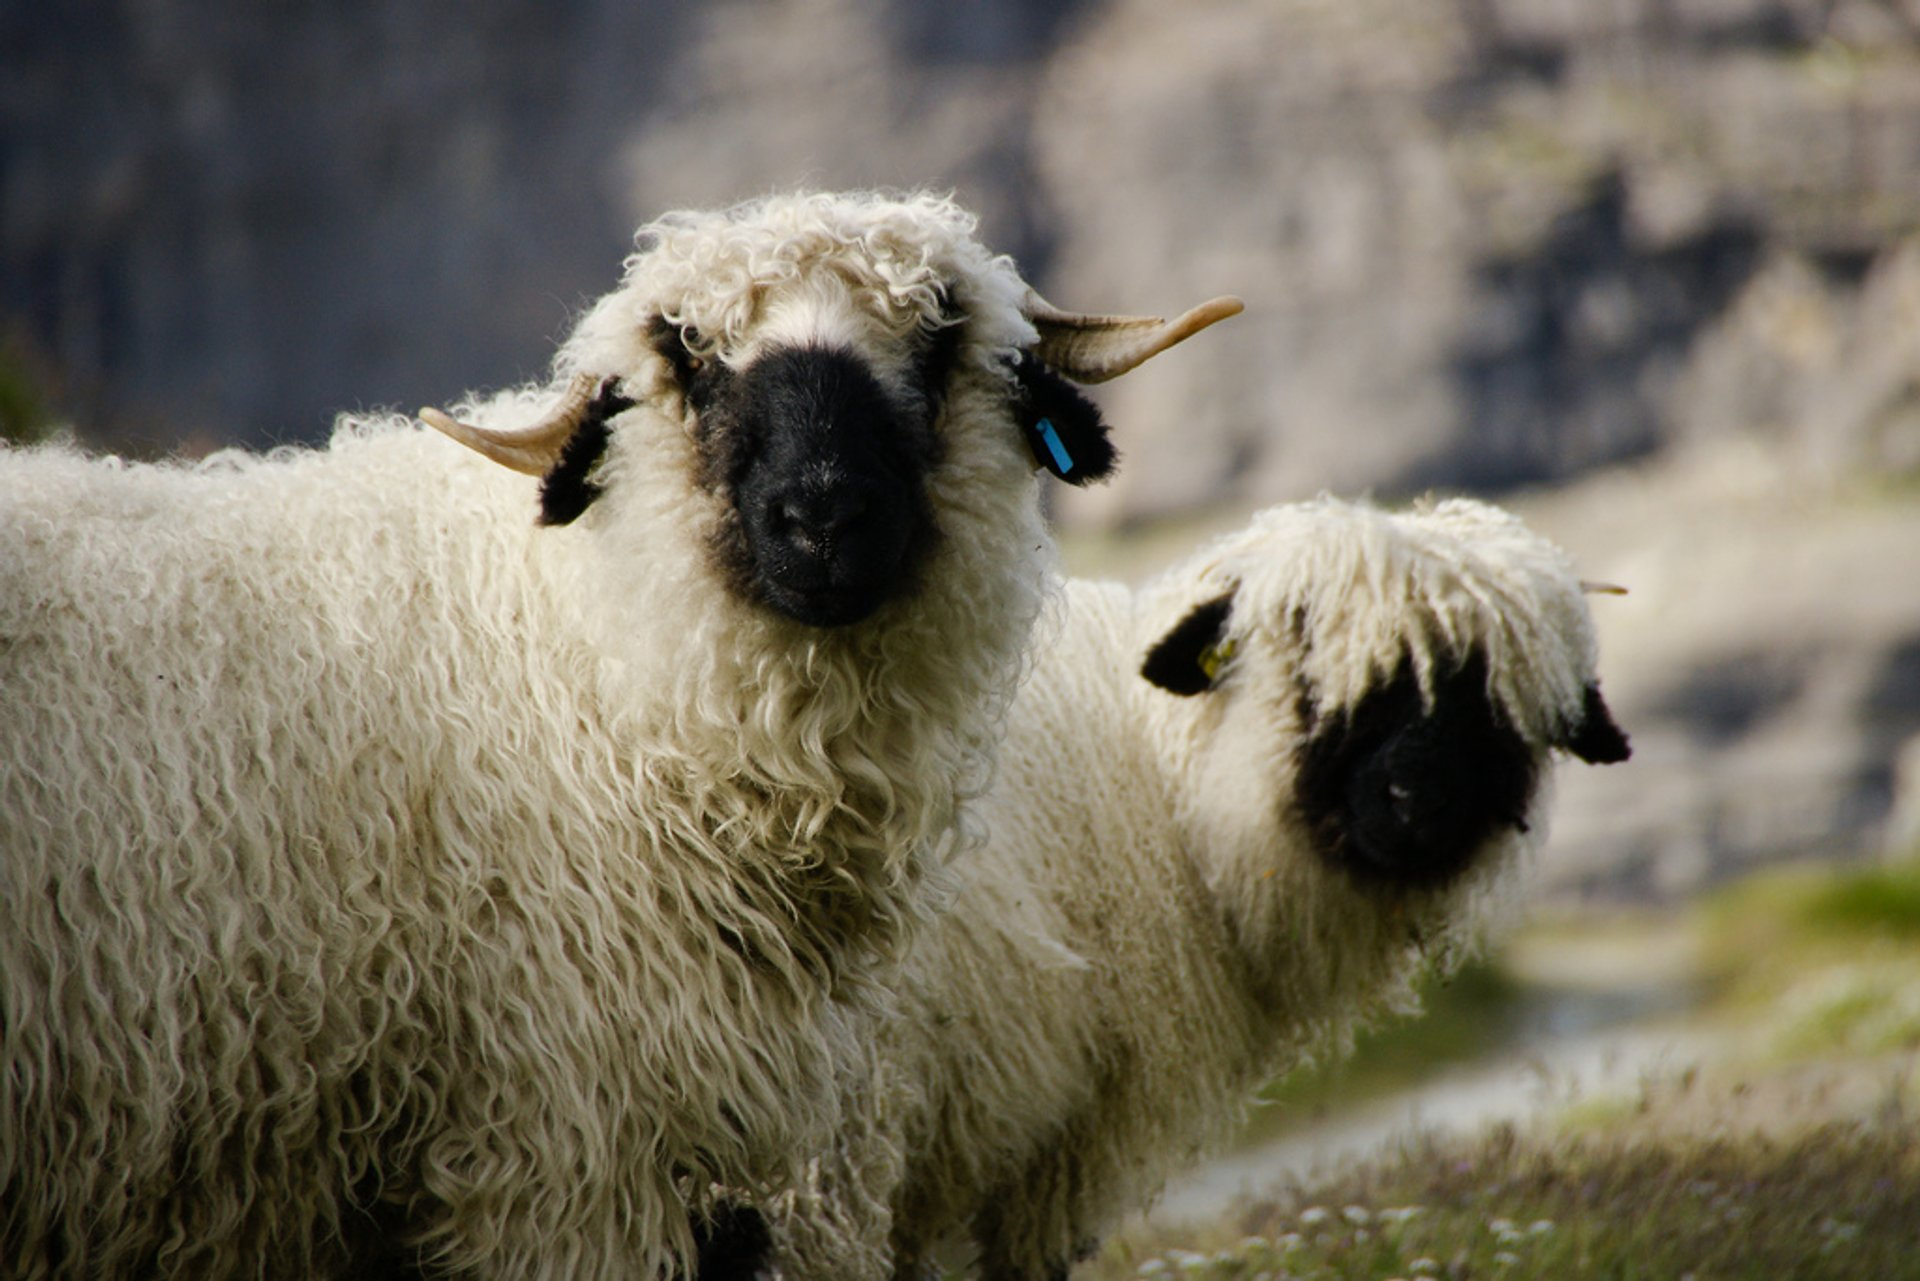 Valais Blacknose Sheep, Zermatt, Switzerland 2020